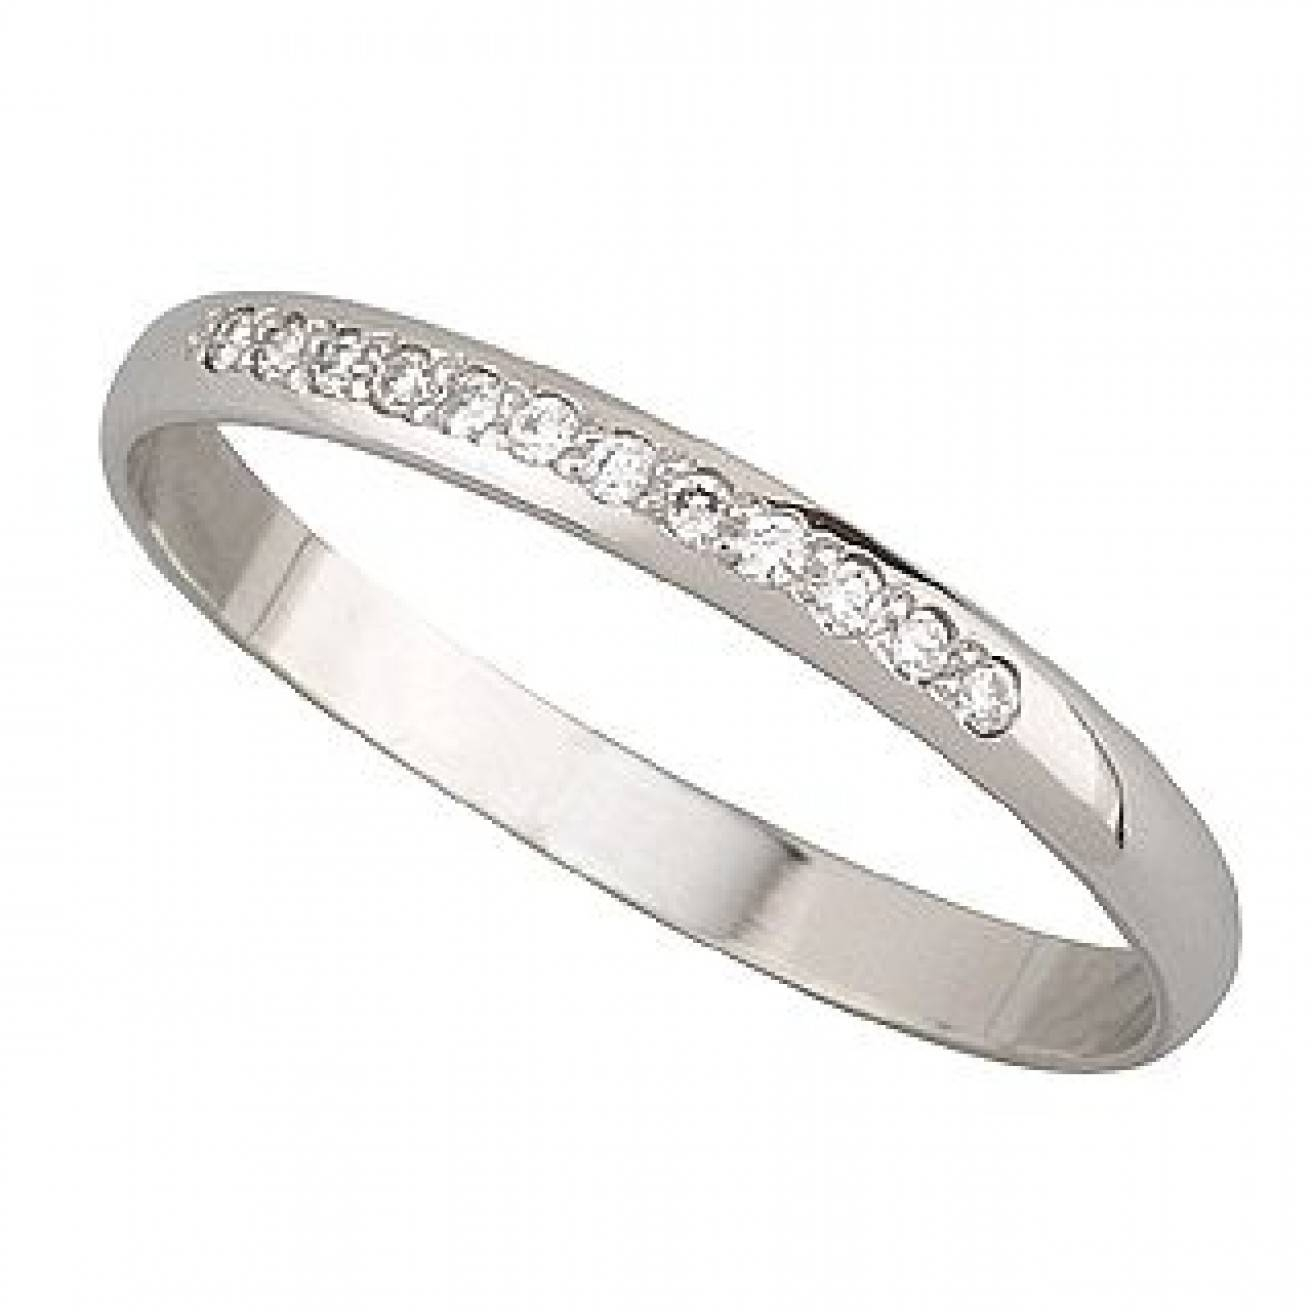 Buy Platinum Wedding Bands Online Fraser Hart With Ladies Rings Gallery 7